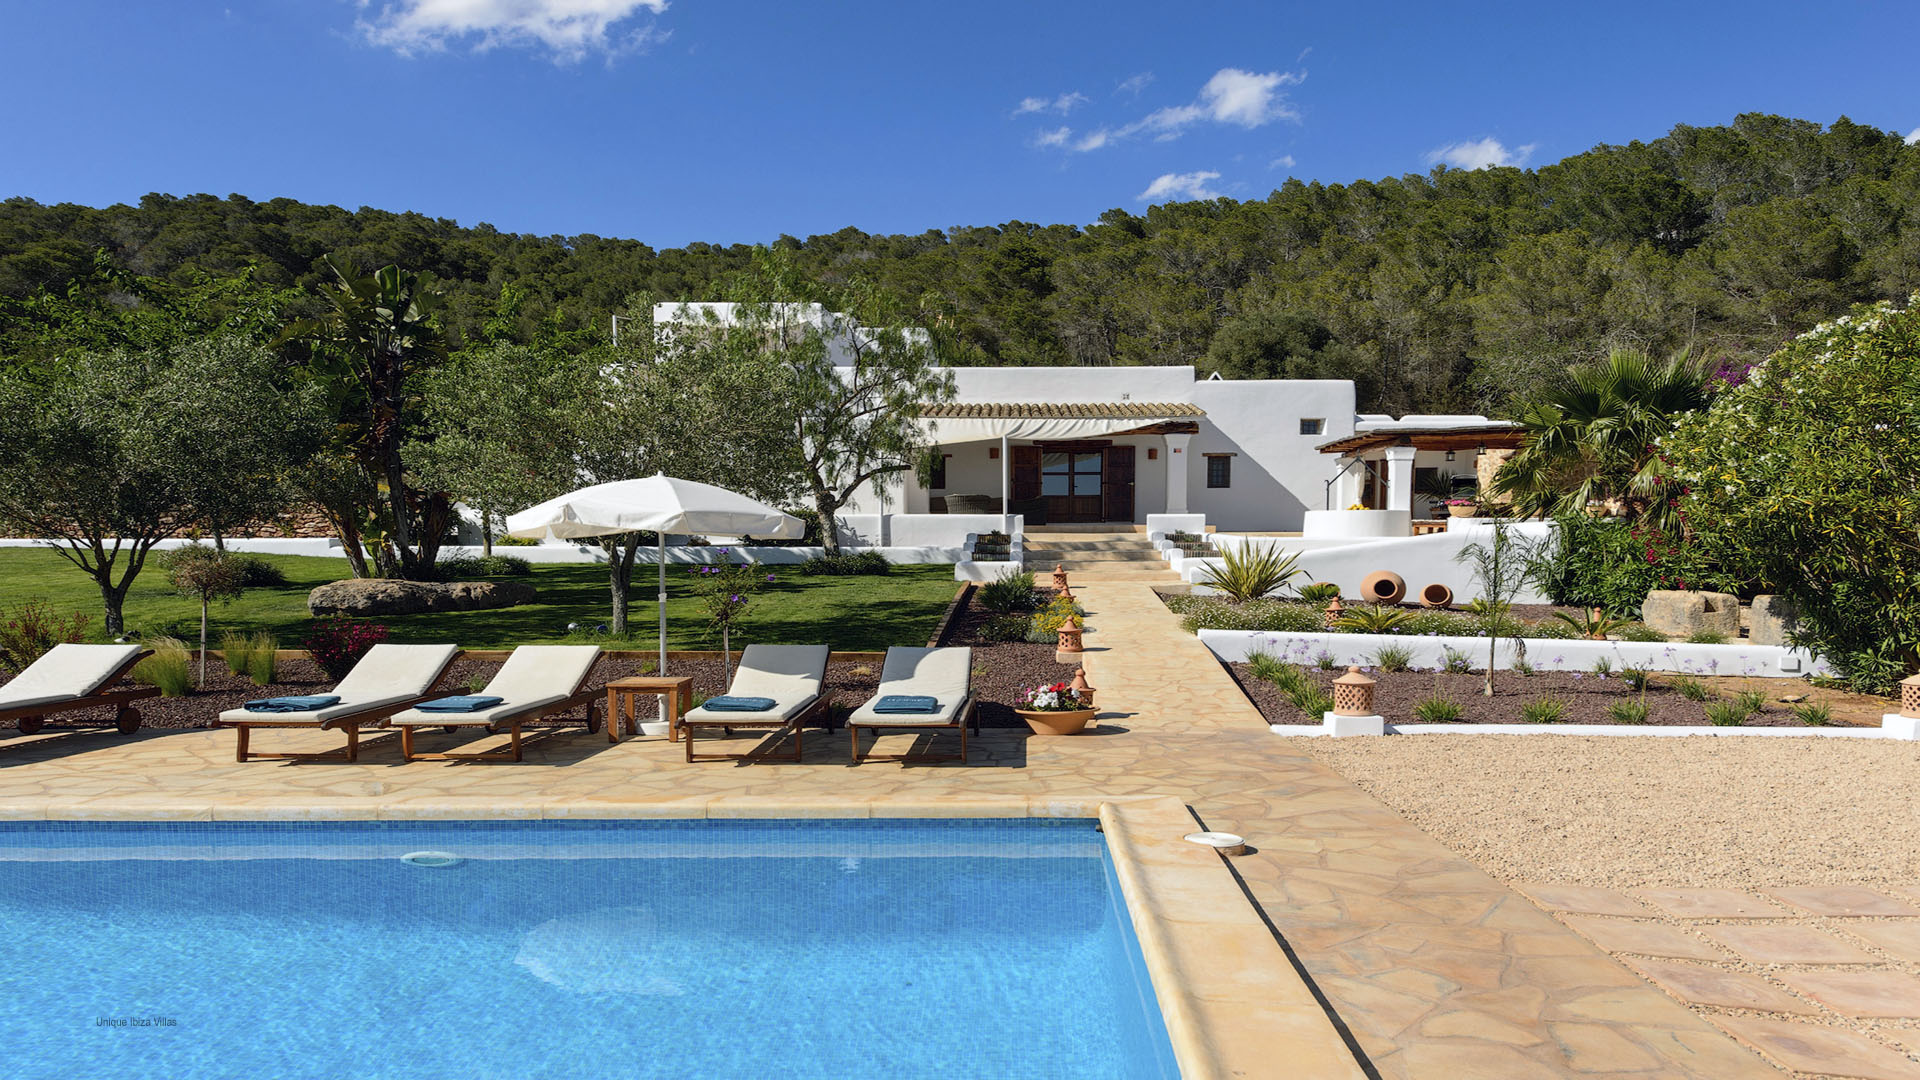 FINCA MAGO  -  (sleeps 9 - rural private villa near Santa Gertrudis - central Ibiza - 5 bedrooms)